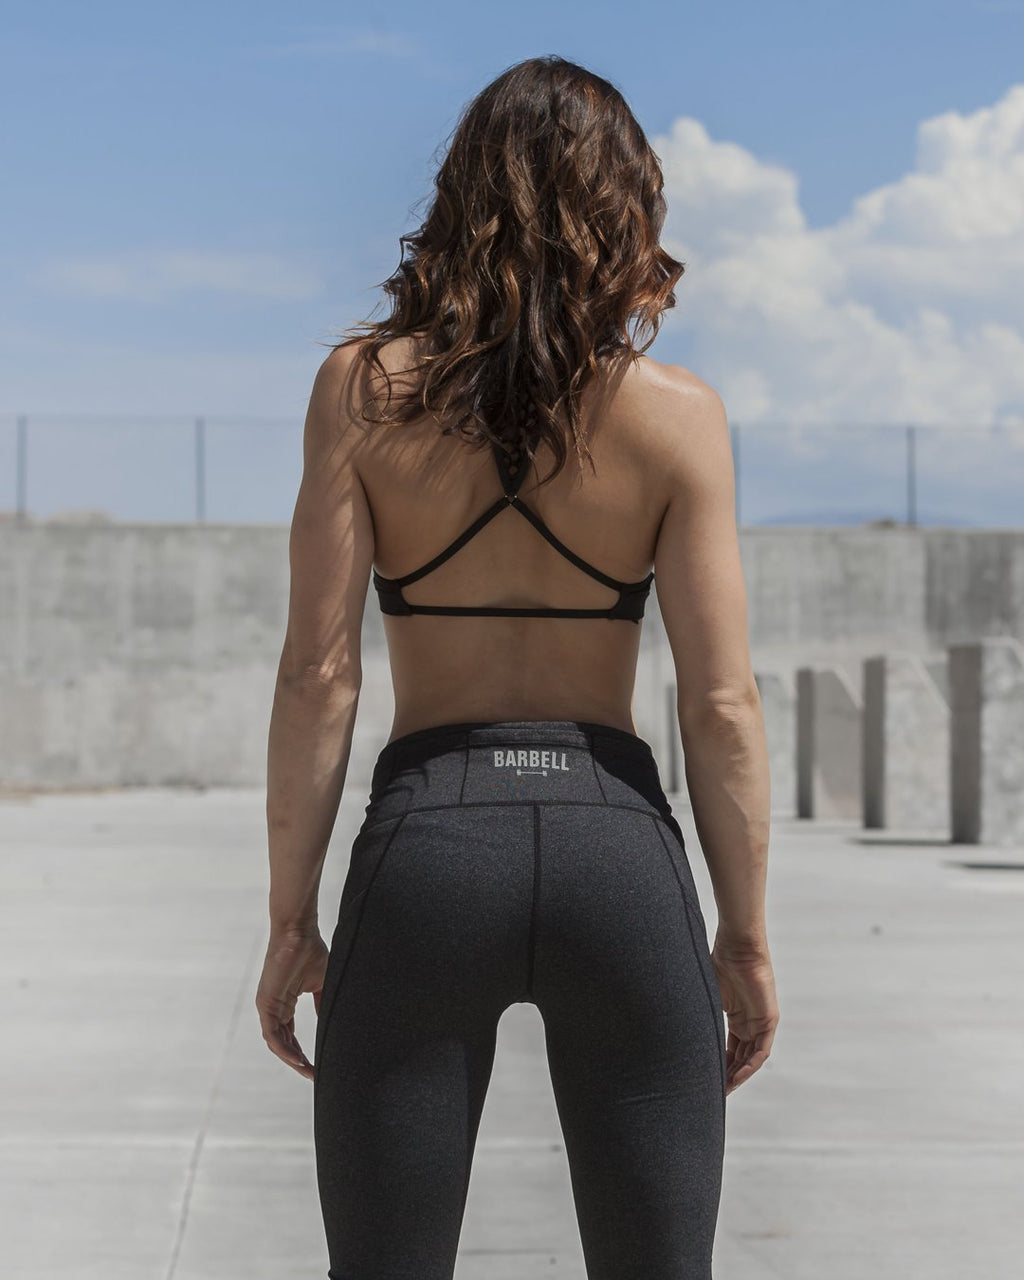 BARBELL APPAREL ADORE POCKET LEGGINGS - GREY